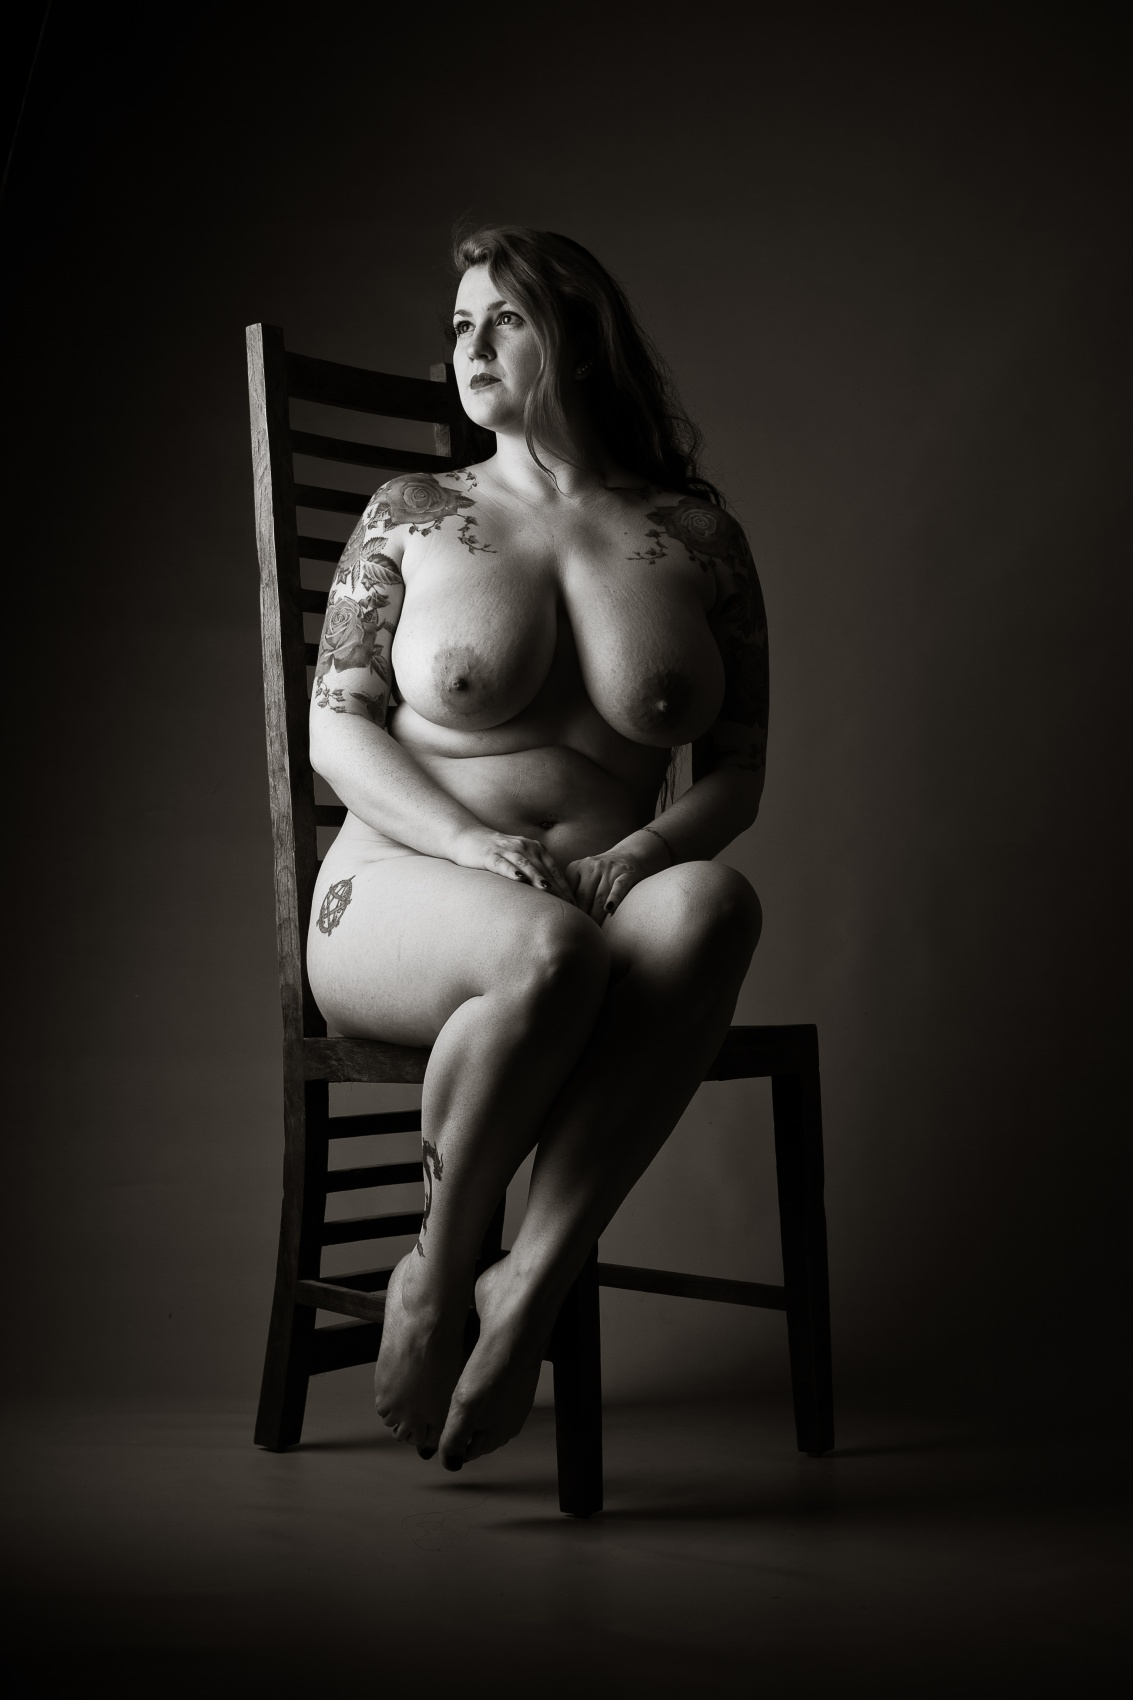 Bbw nude photography